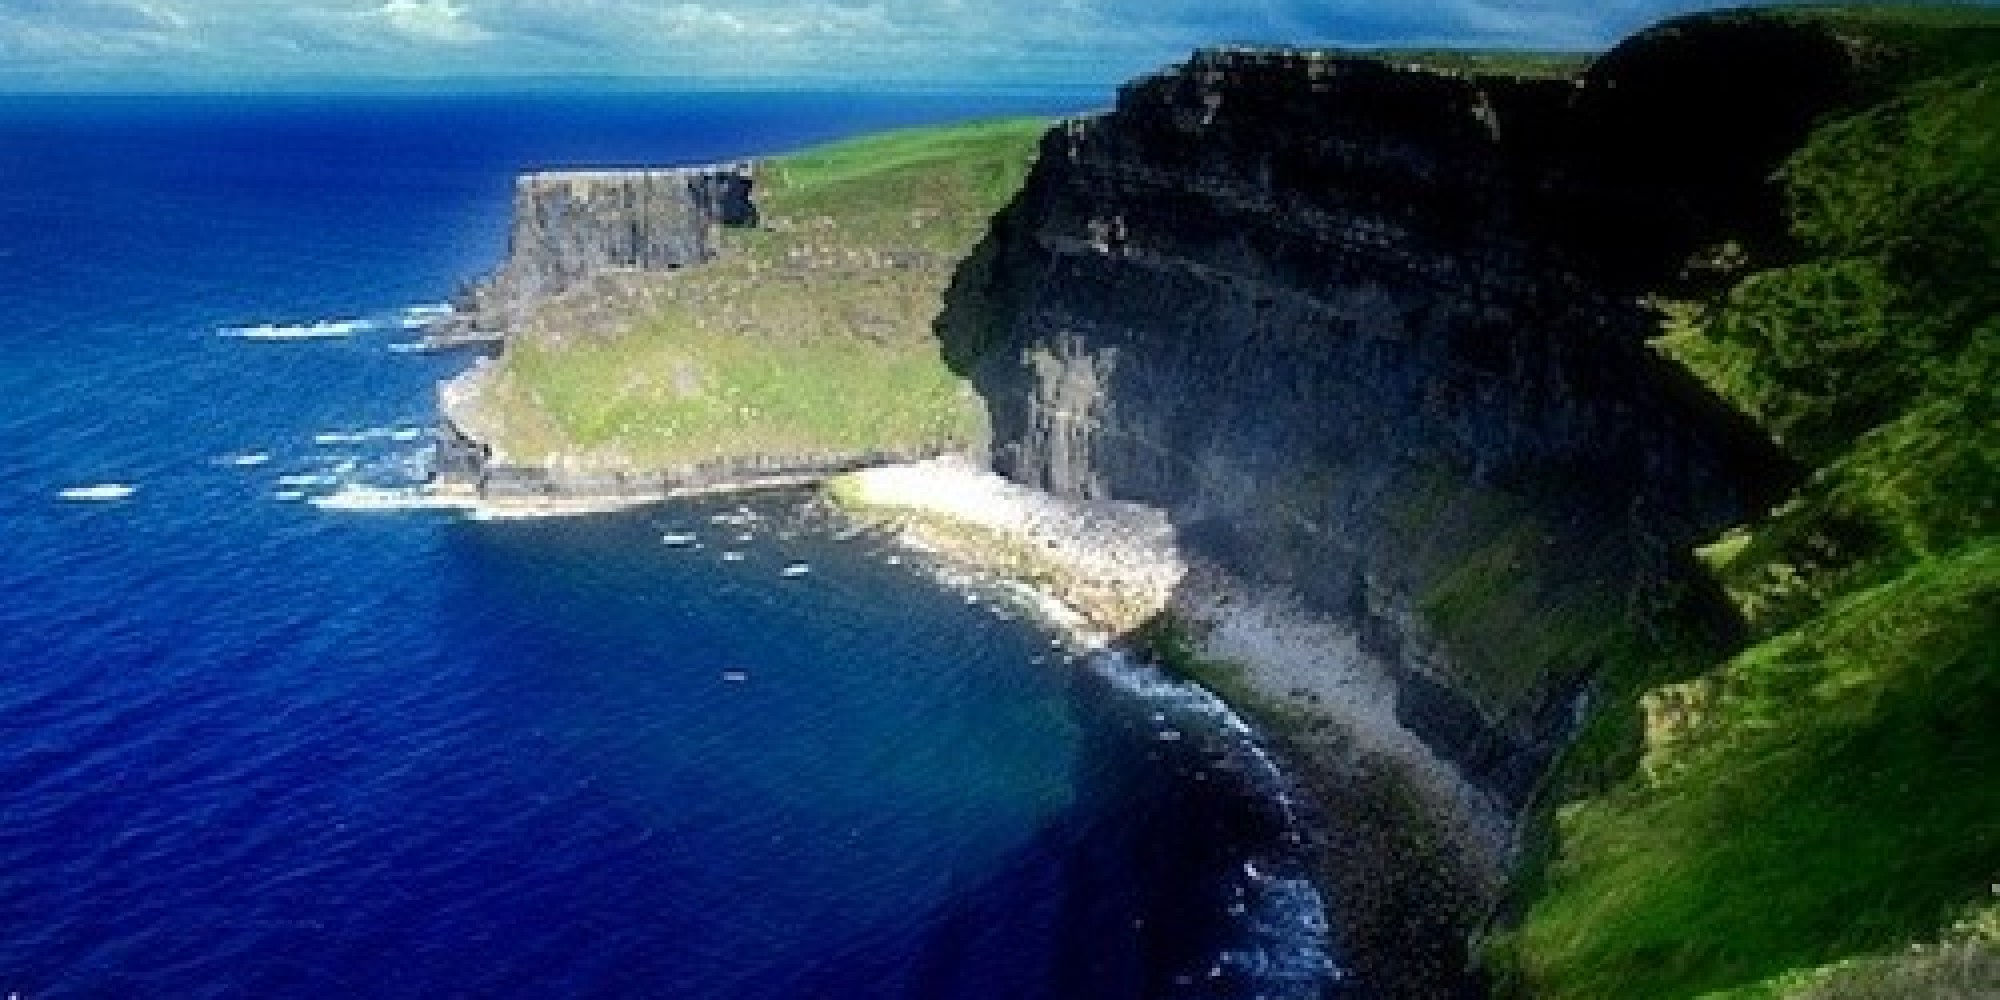 ireland places visit scenery countryside cliffs travel amazing vacation moher villages country spots wild huffingtonpost coastal irlanda tourist beauties wonderful